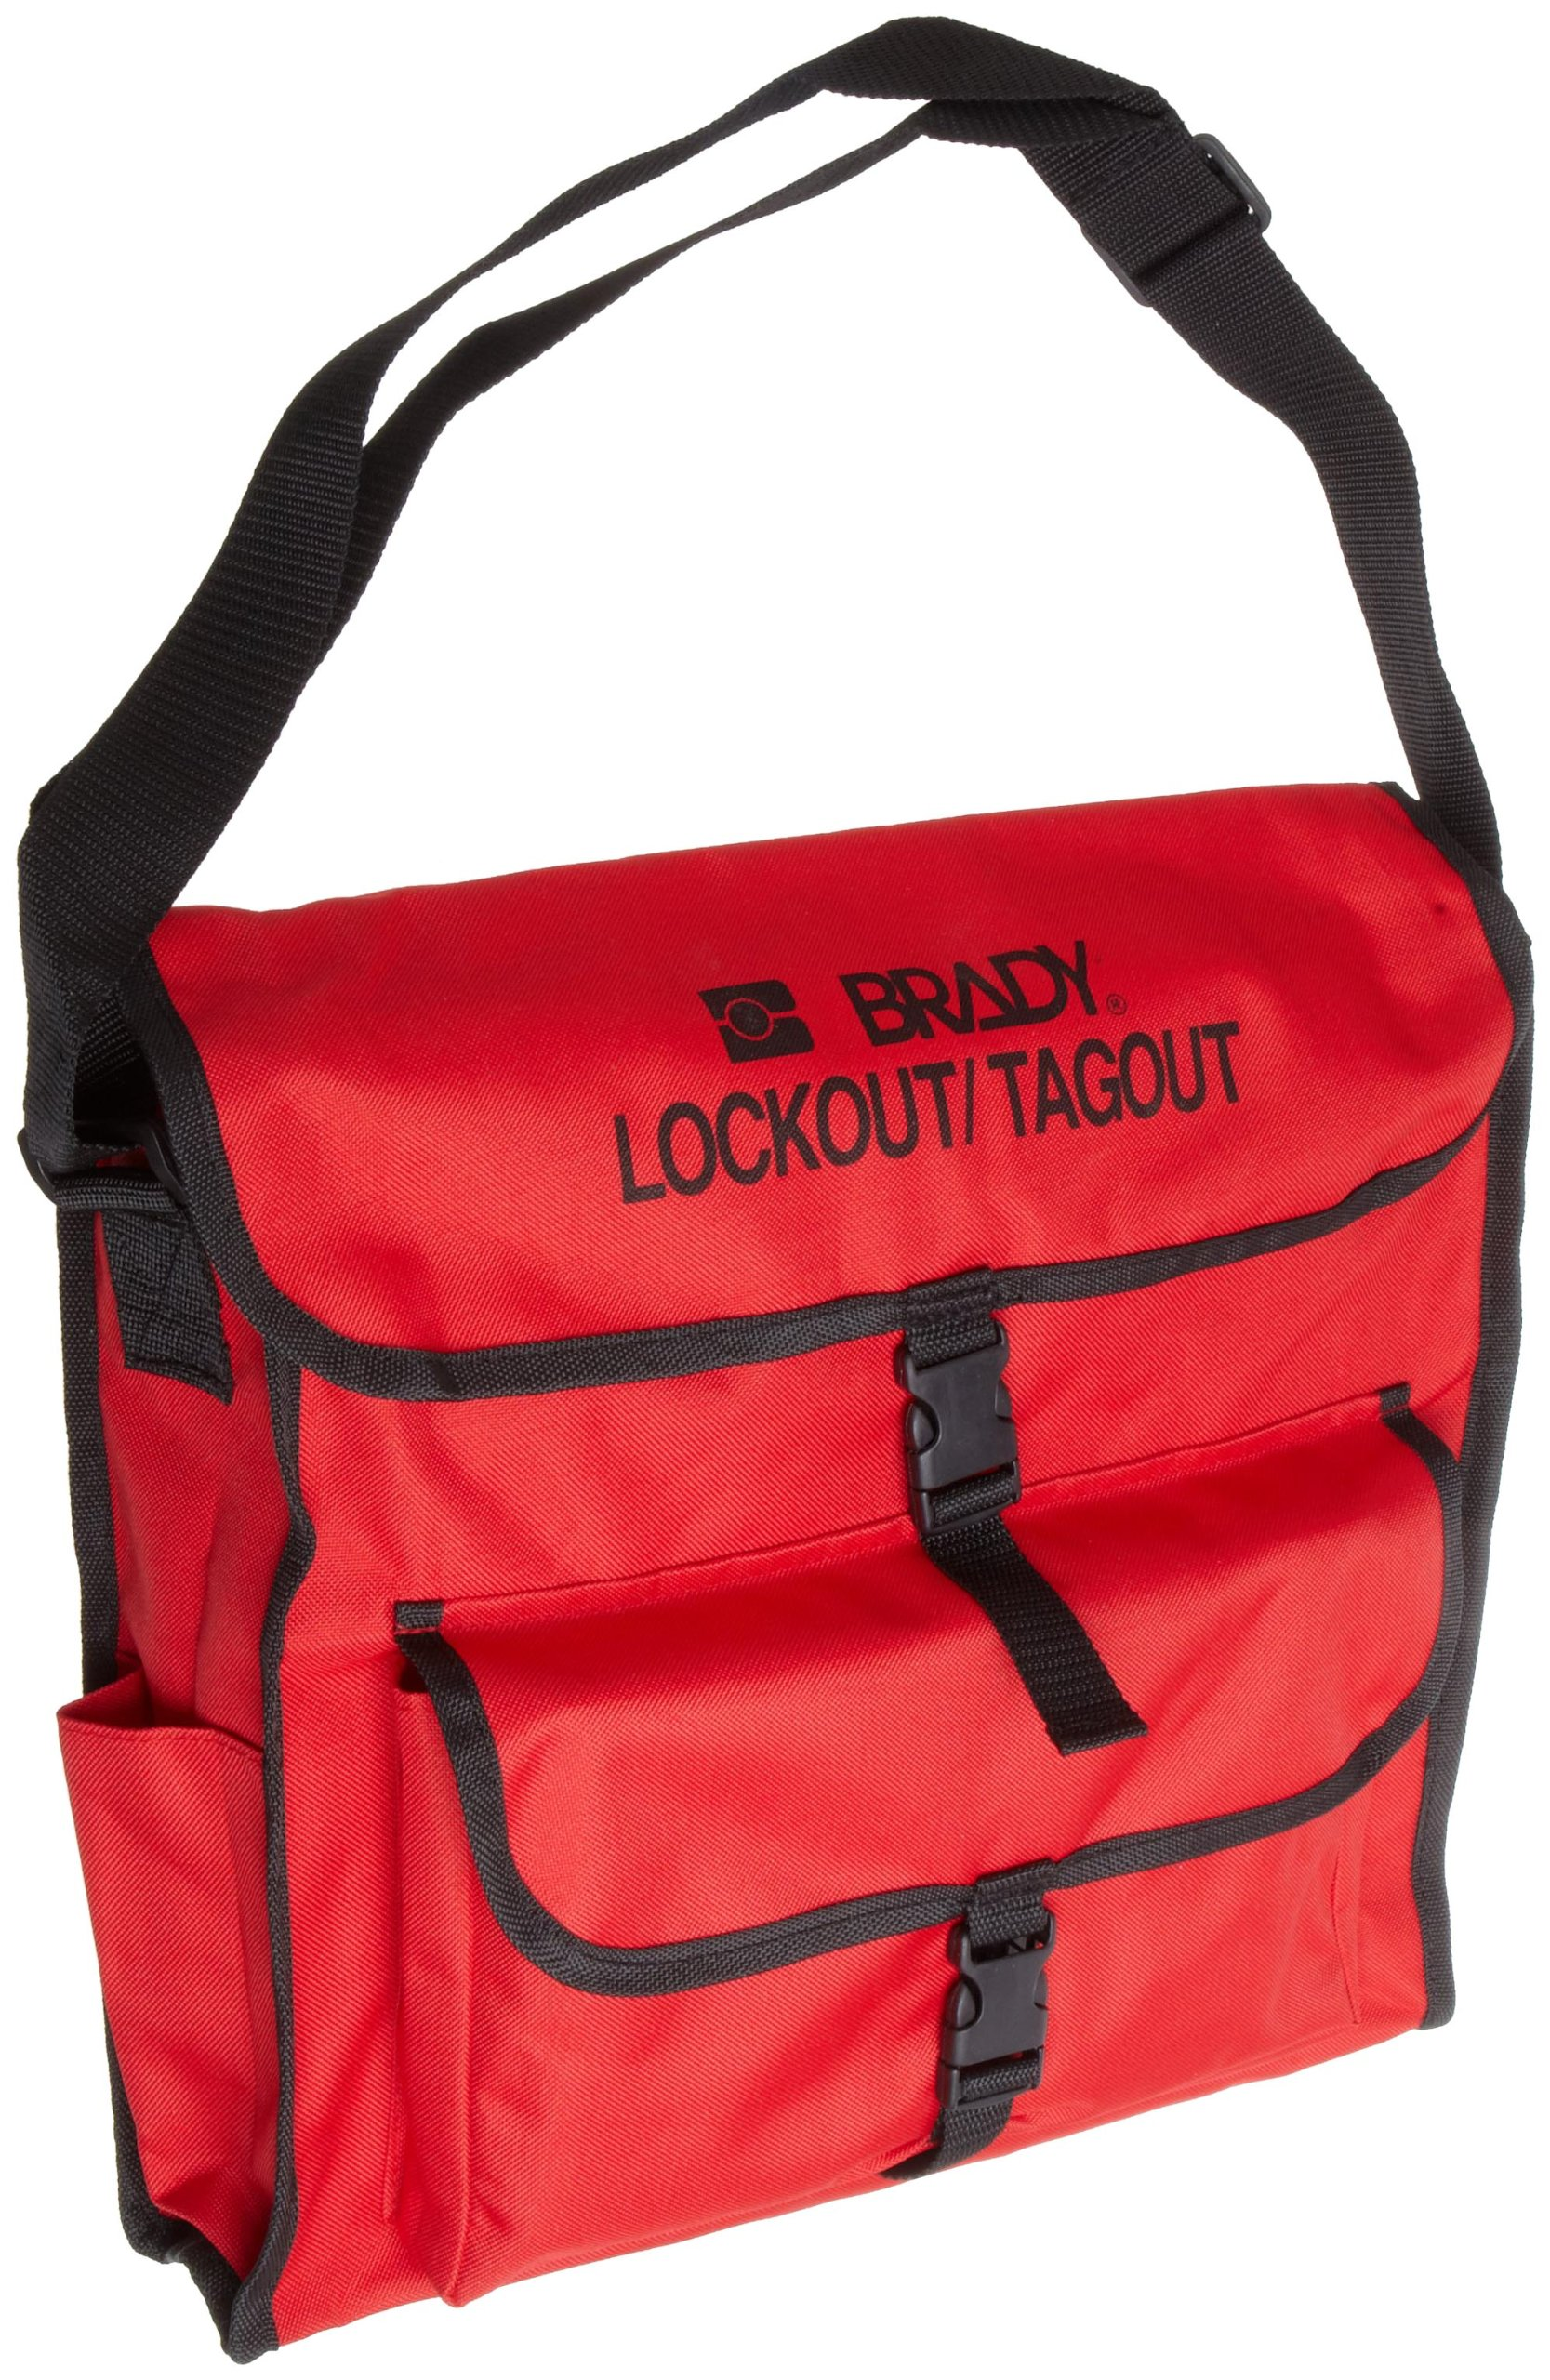 Brady Lockout Satchel, Legend''Brady Lockout/Tagout''